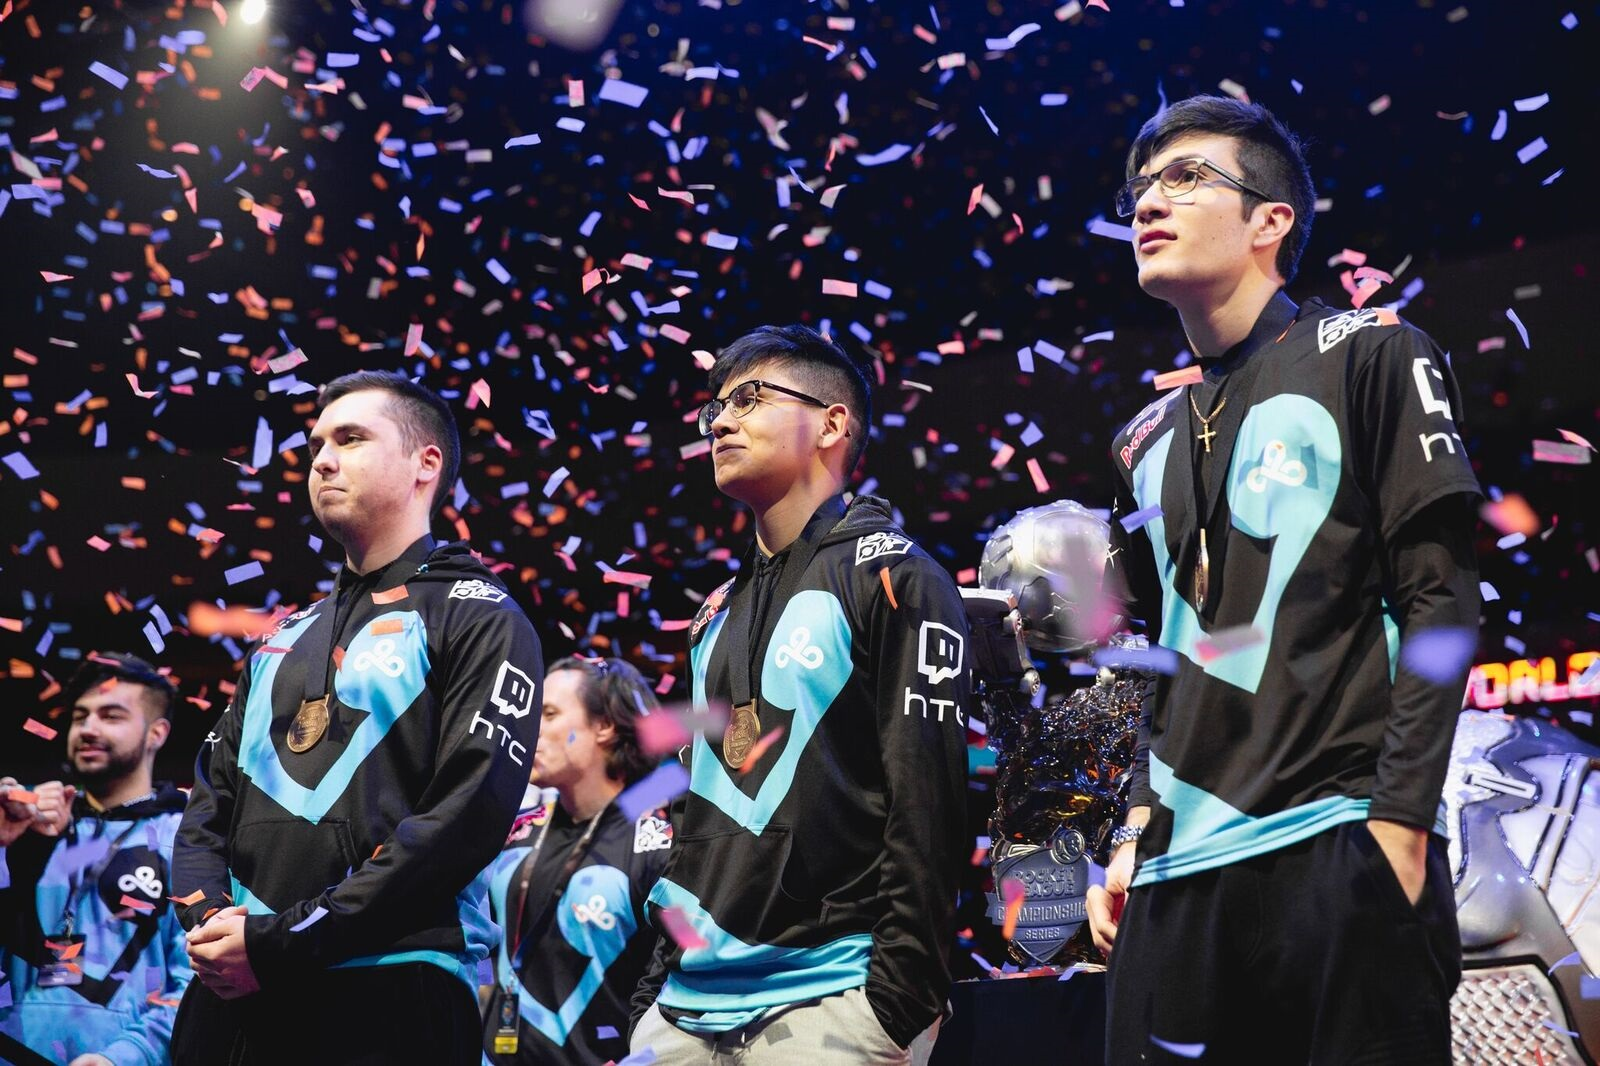 Solo plays and style led to Cloud9's first Rocket League championship photo